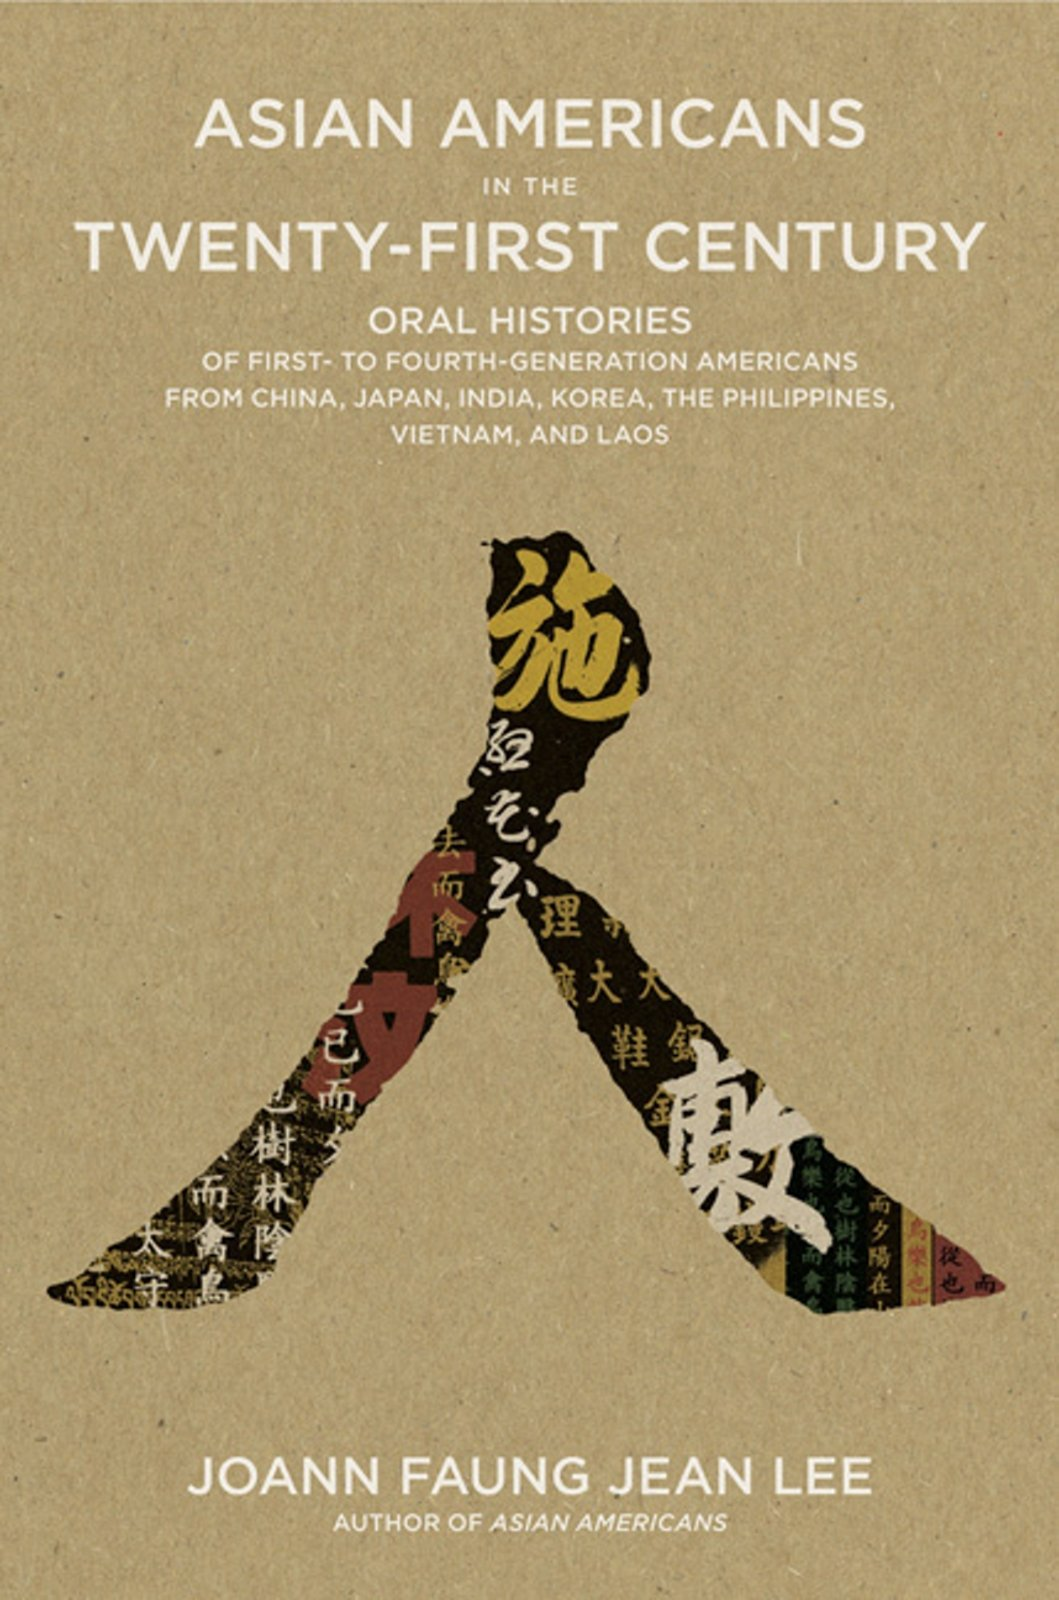 Download Asian Americans in the Twenty-first Century: Oral Histories of First- to Fourth-generation Americans from China, Japan, India, Korea, the Philippines, Vietnam, and Laos PDF